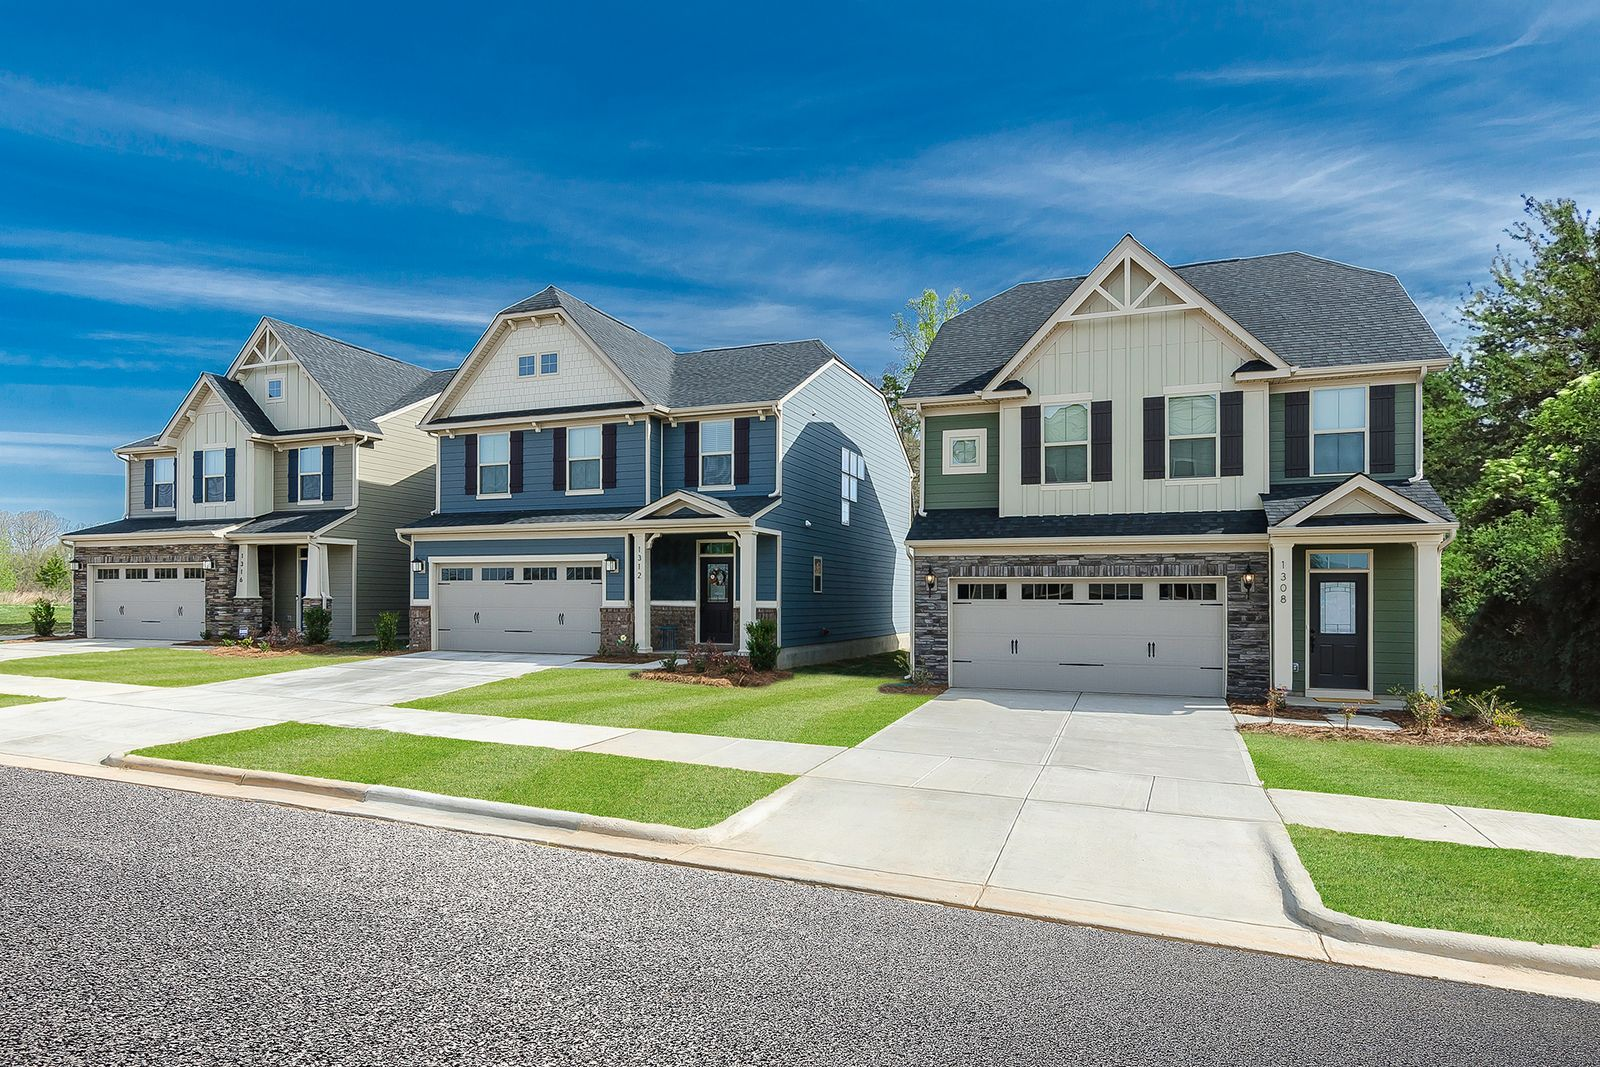 Limited Homesites are Being Released Every Month:Join the VIP Listto be notified when new homesites are released next month in this sought-after community!